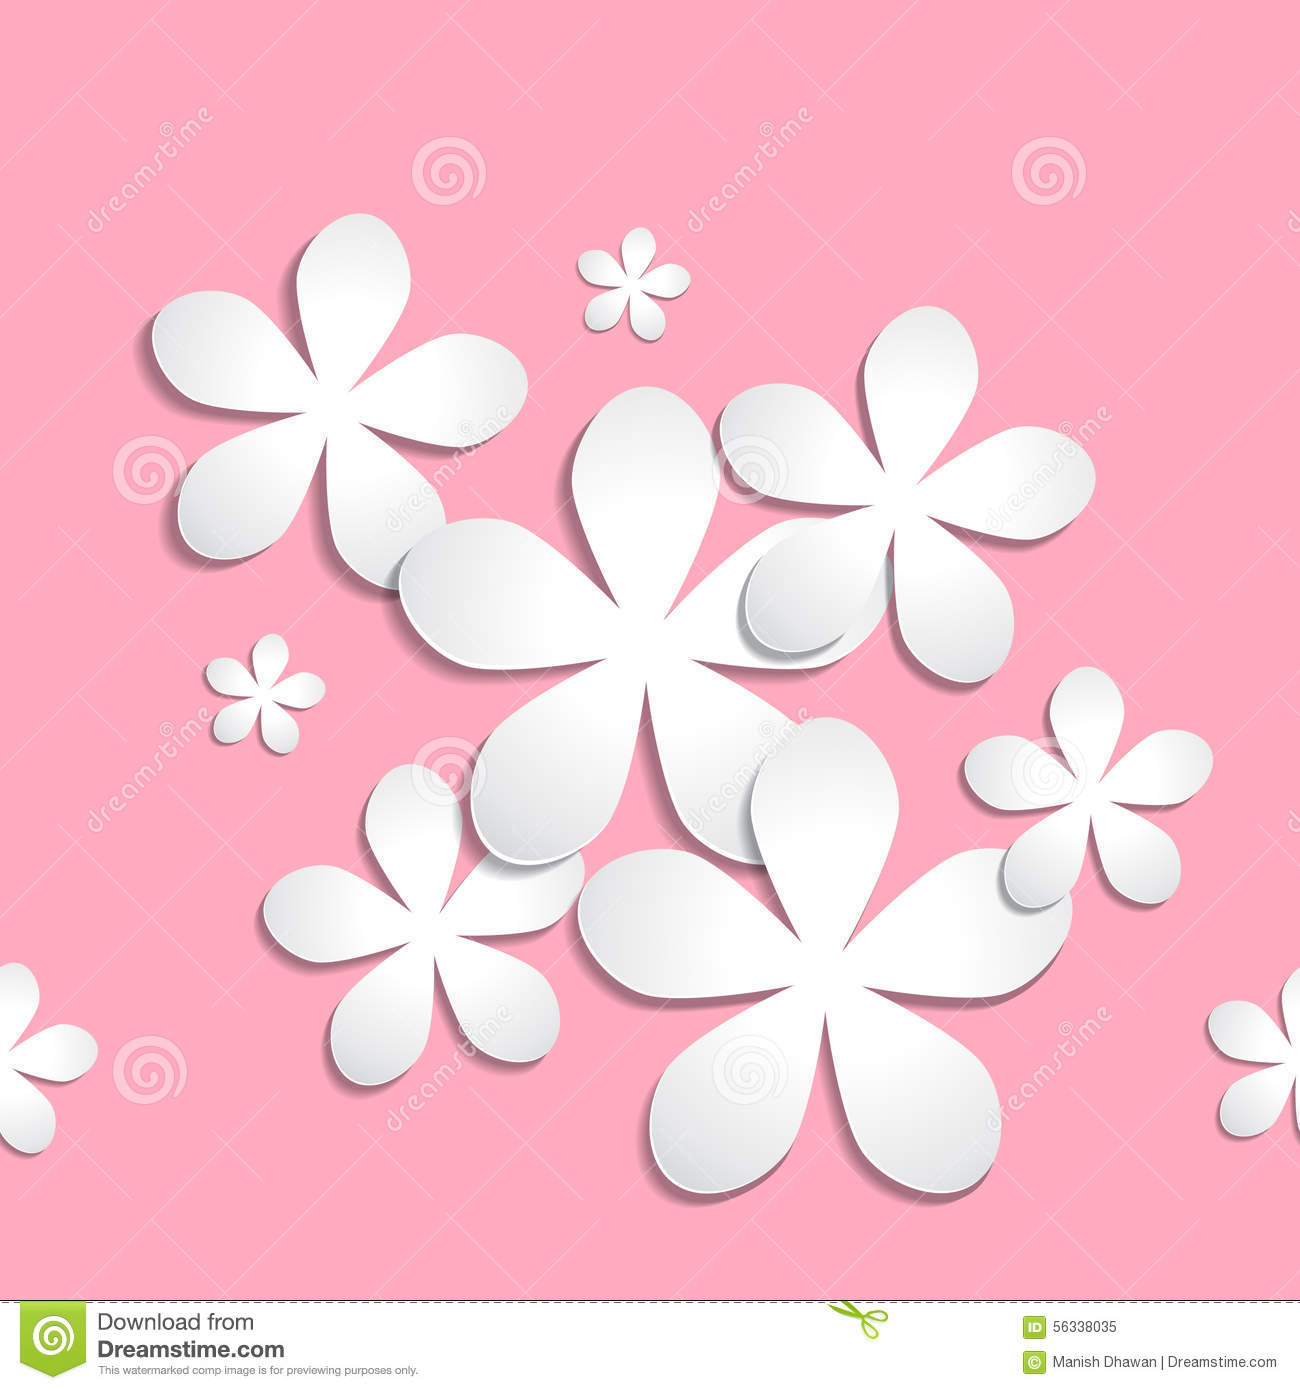 abstract 3d paper flower pattern pink background stock vector